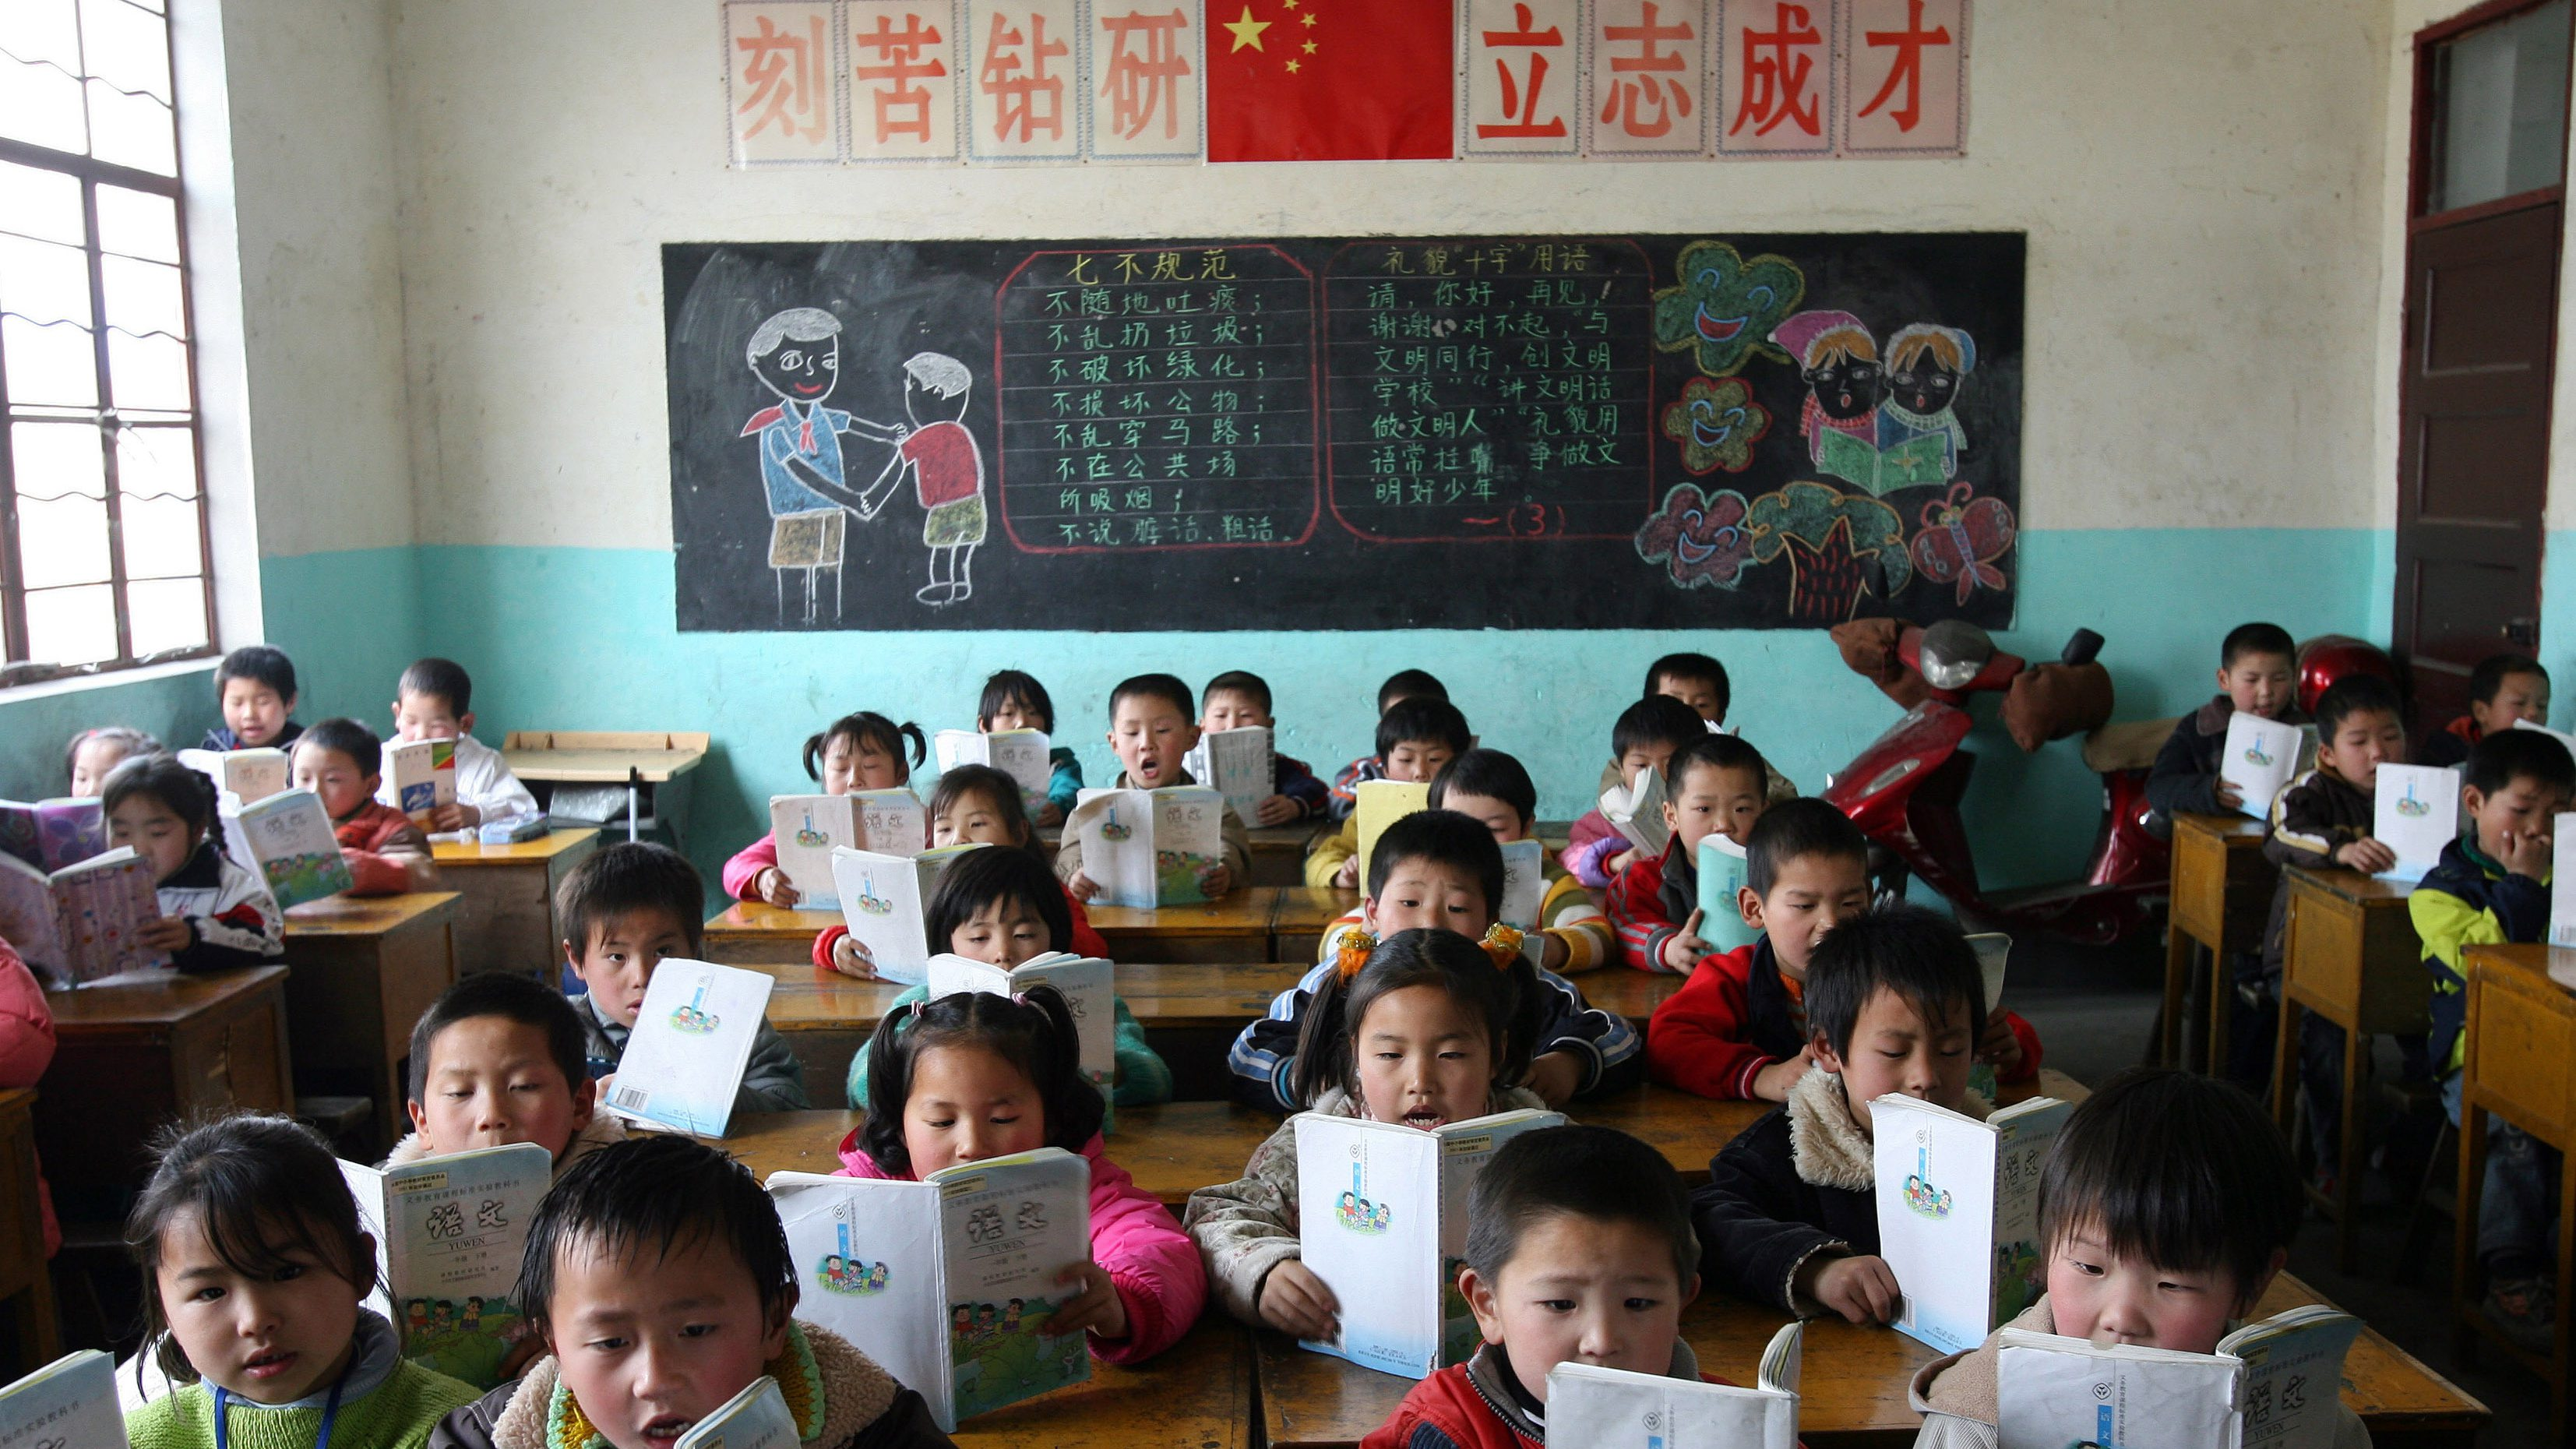 Chinese immigrant workers' children study in their classroom in a rural part of Shanghai March 6, 2006. [Premier Wen Jiabao] told parliament on Sunday that China would channel its surging economic growth to improve living conditions of rural people and narrow the widening gap between the country's rich cities and restive countryside. - RTXOD2E